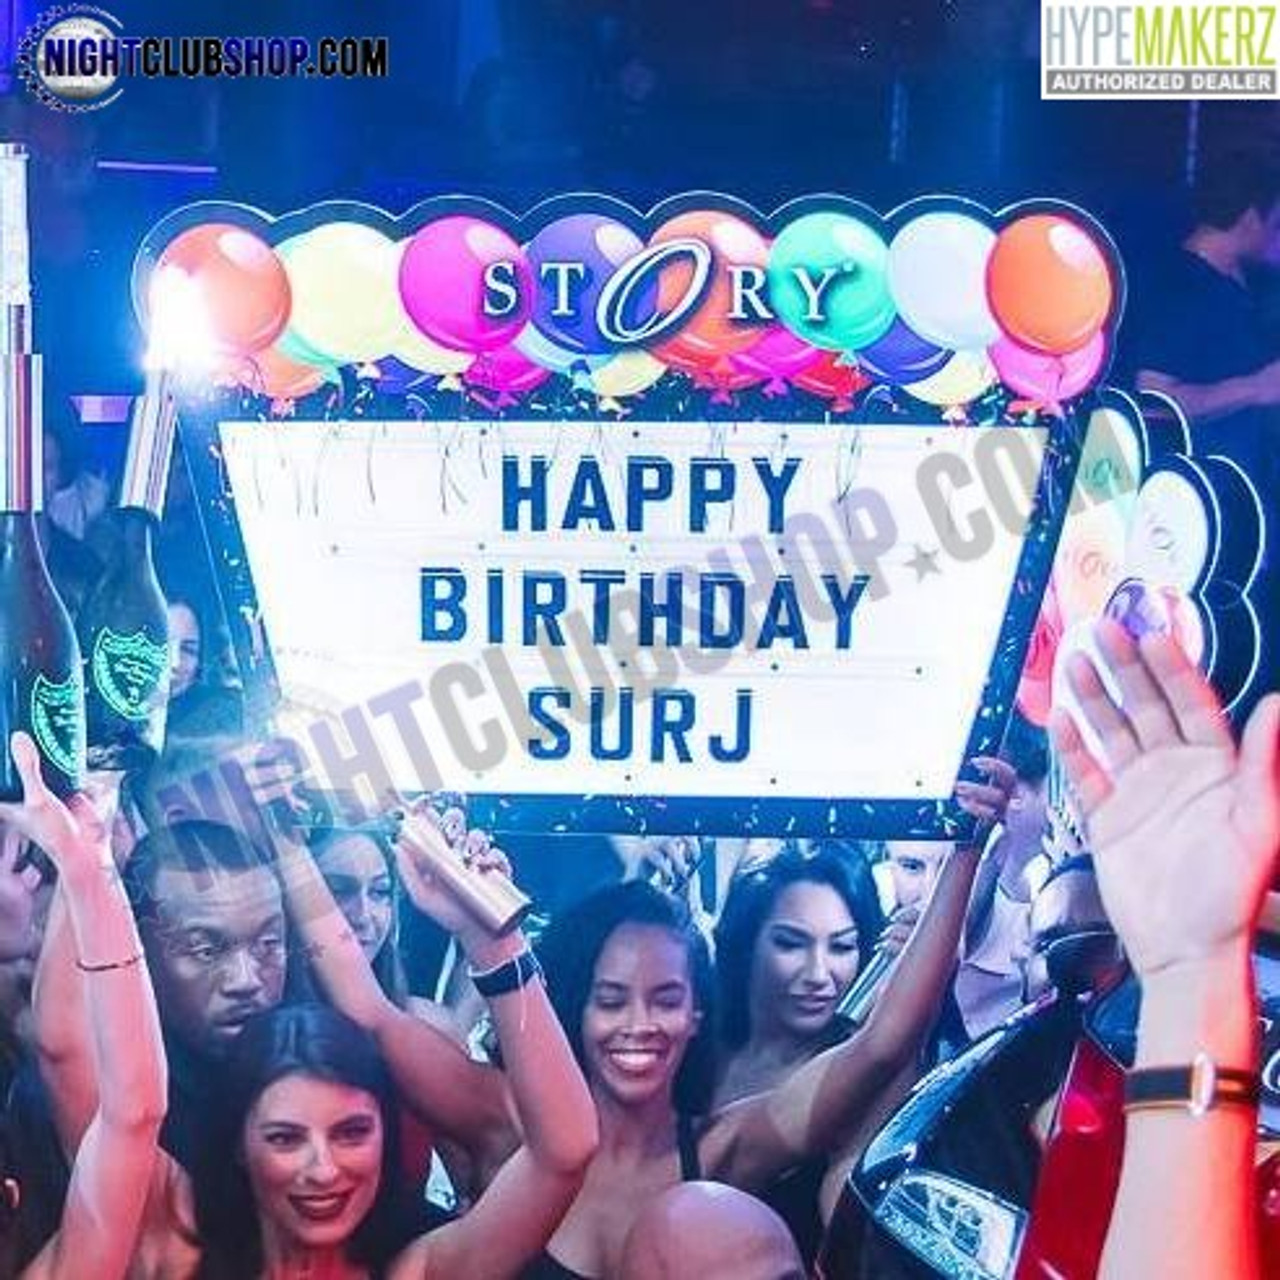 LED, Balloon, letter, board, marquee, Bottle service, VIP, Interchangeable, Custom, logo, brand, venue, nightclub, b-day, birthday, happy b-day, balloons